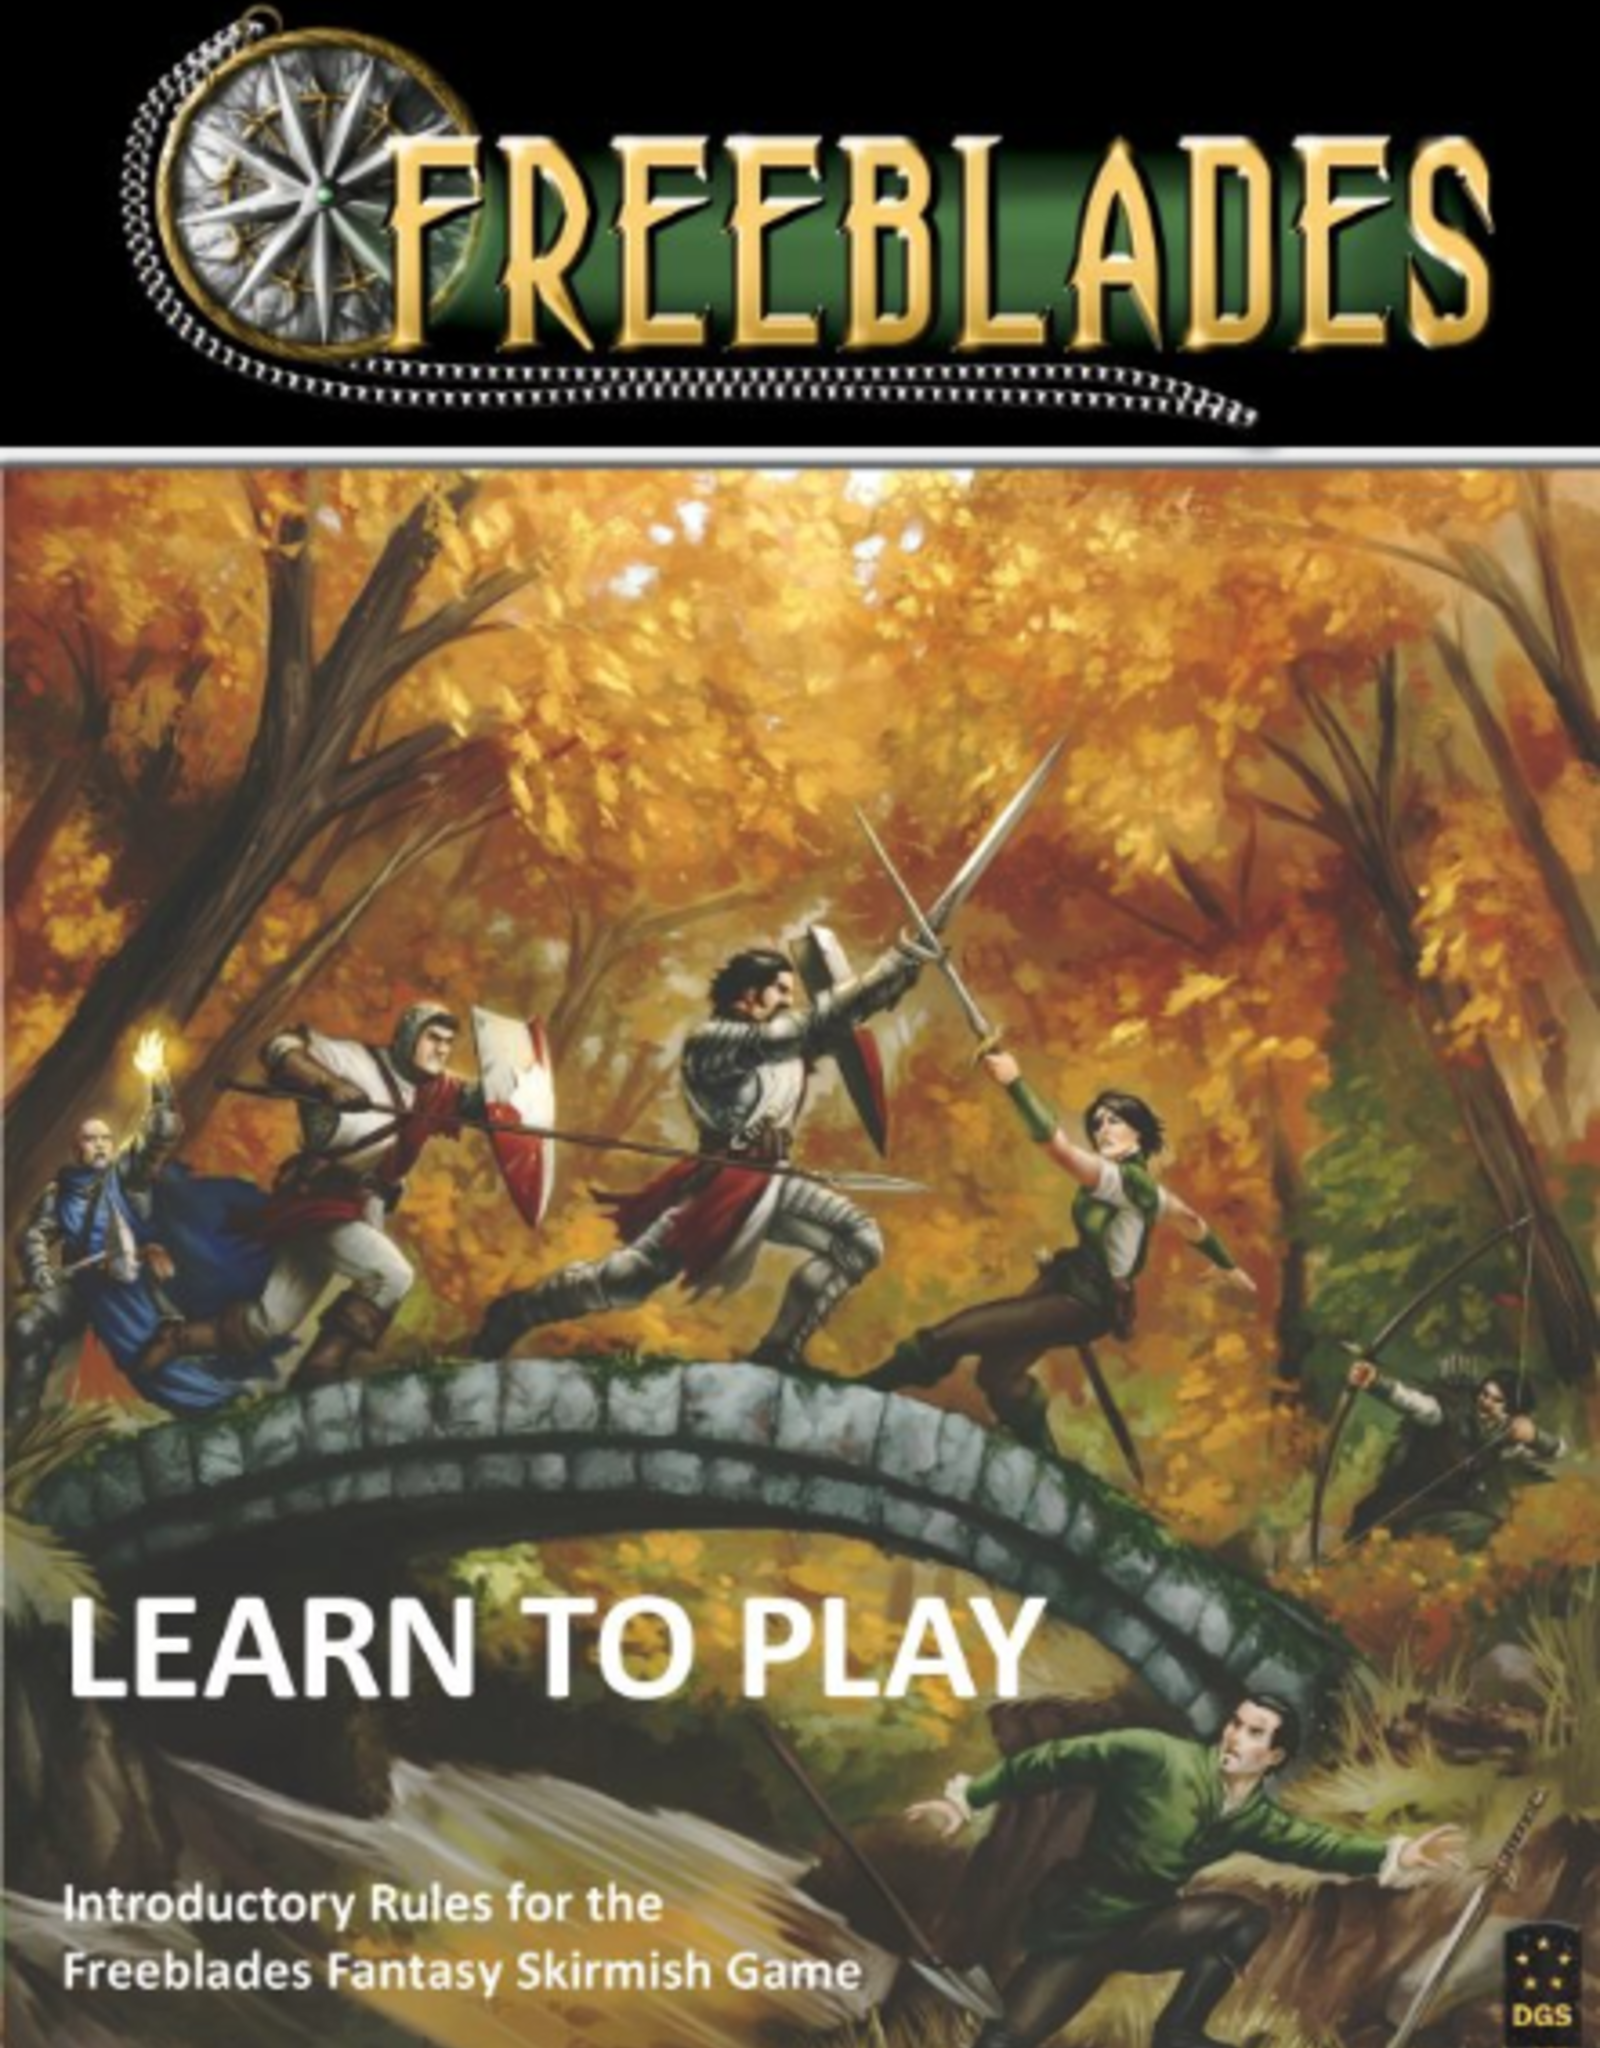 Freeblades Learn to Play Rulebook